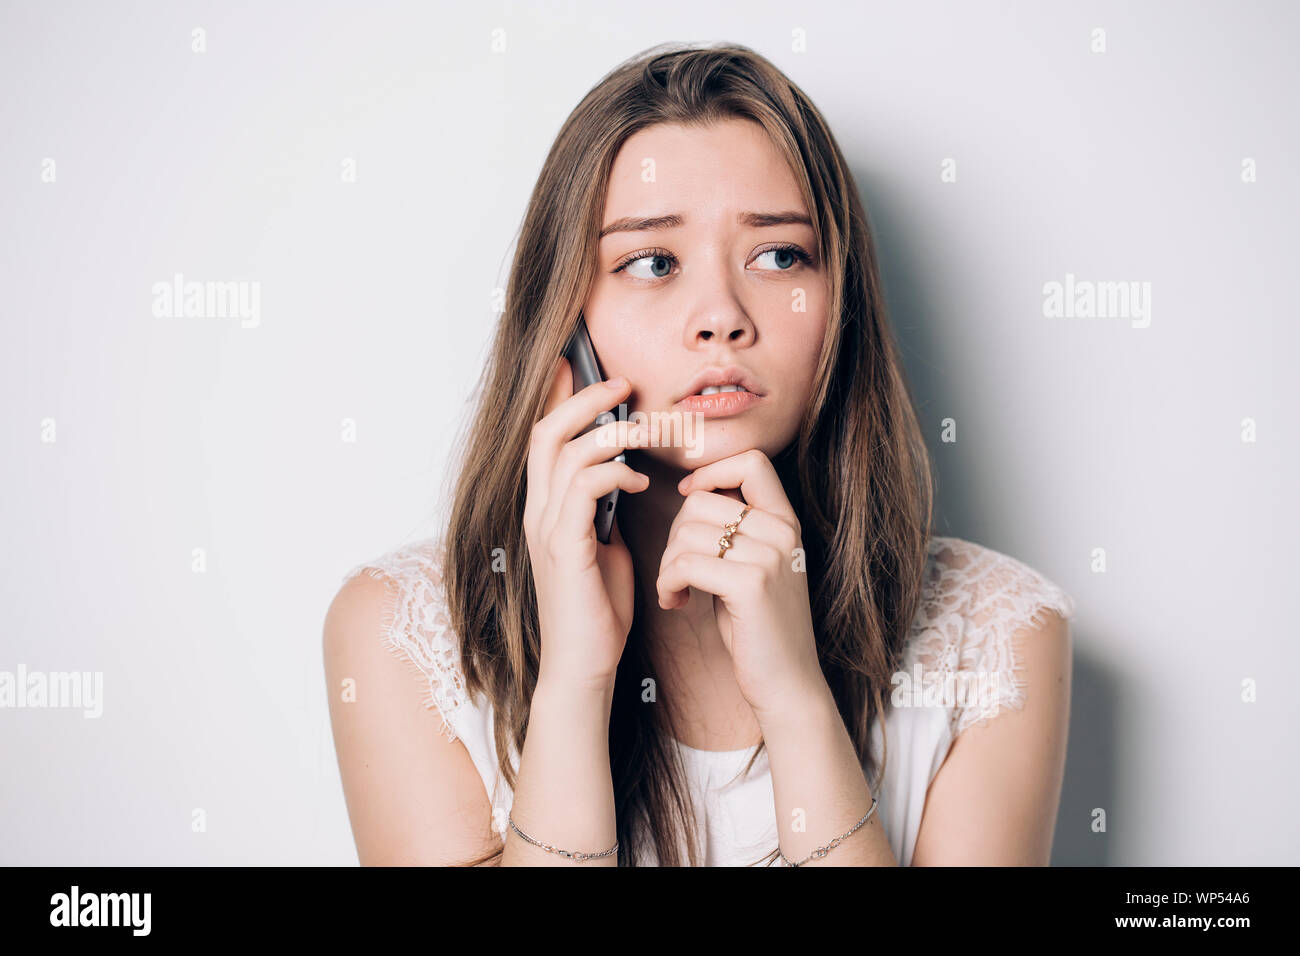 Frustrated annoyed sad woman with mobile phone. Young upset woman talking on phone in office. Unhappy, sad girl, emotions, expressive facial features Stock Photo